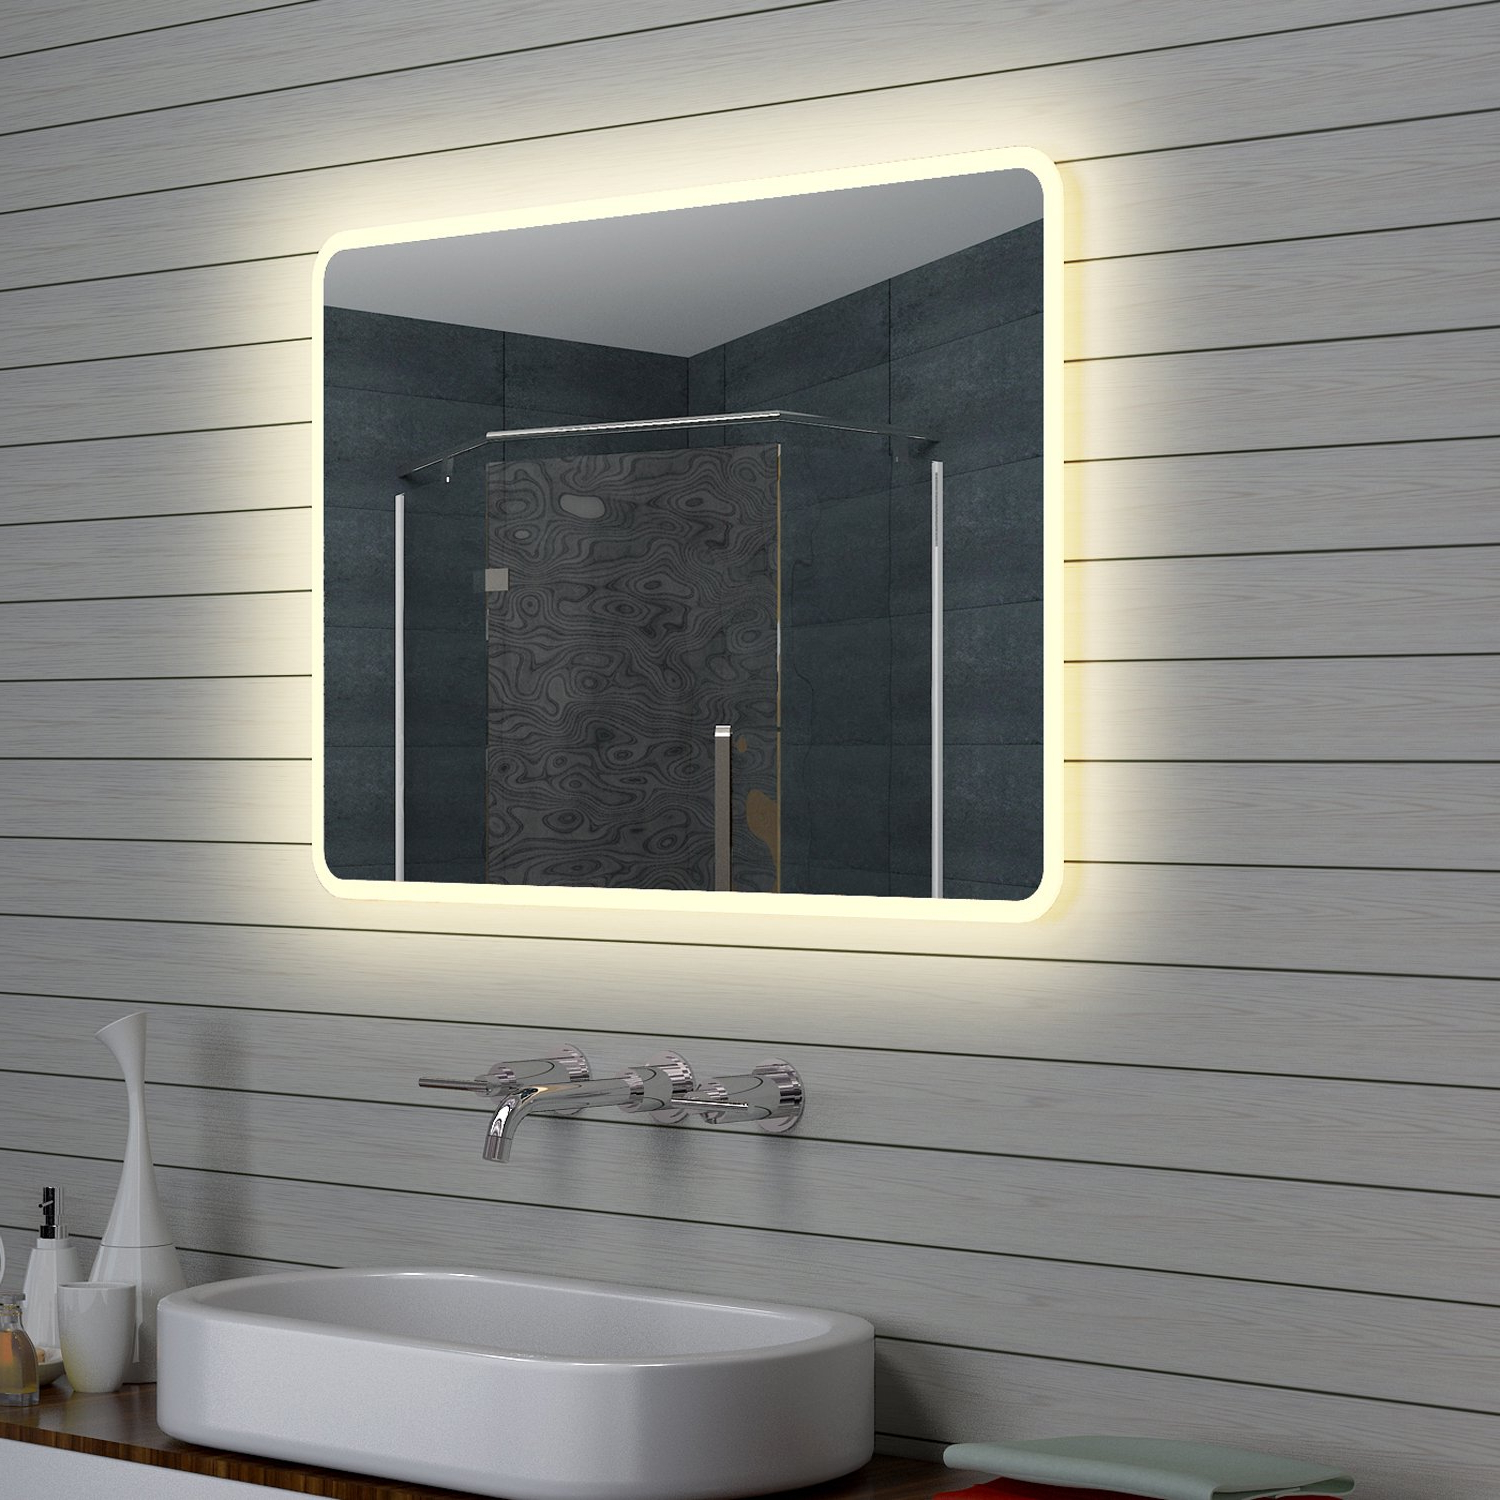 Aqua Wall Mirrors Intended For Favorite Lux Aqua Design Led Bathroom Mirror Light, Wall Mirror, 100 X 70 Cm (View 12 of 20)